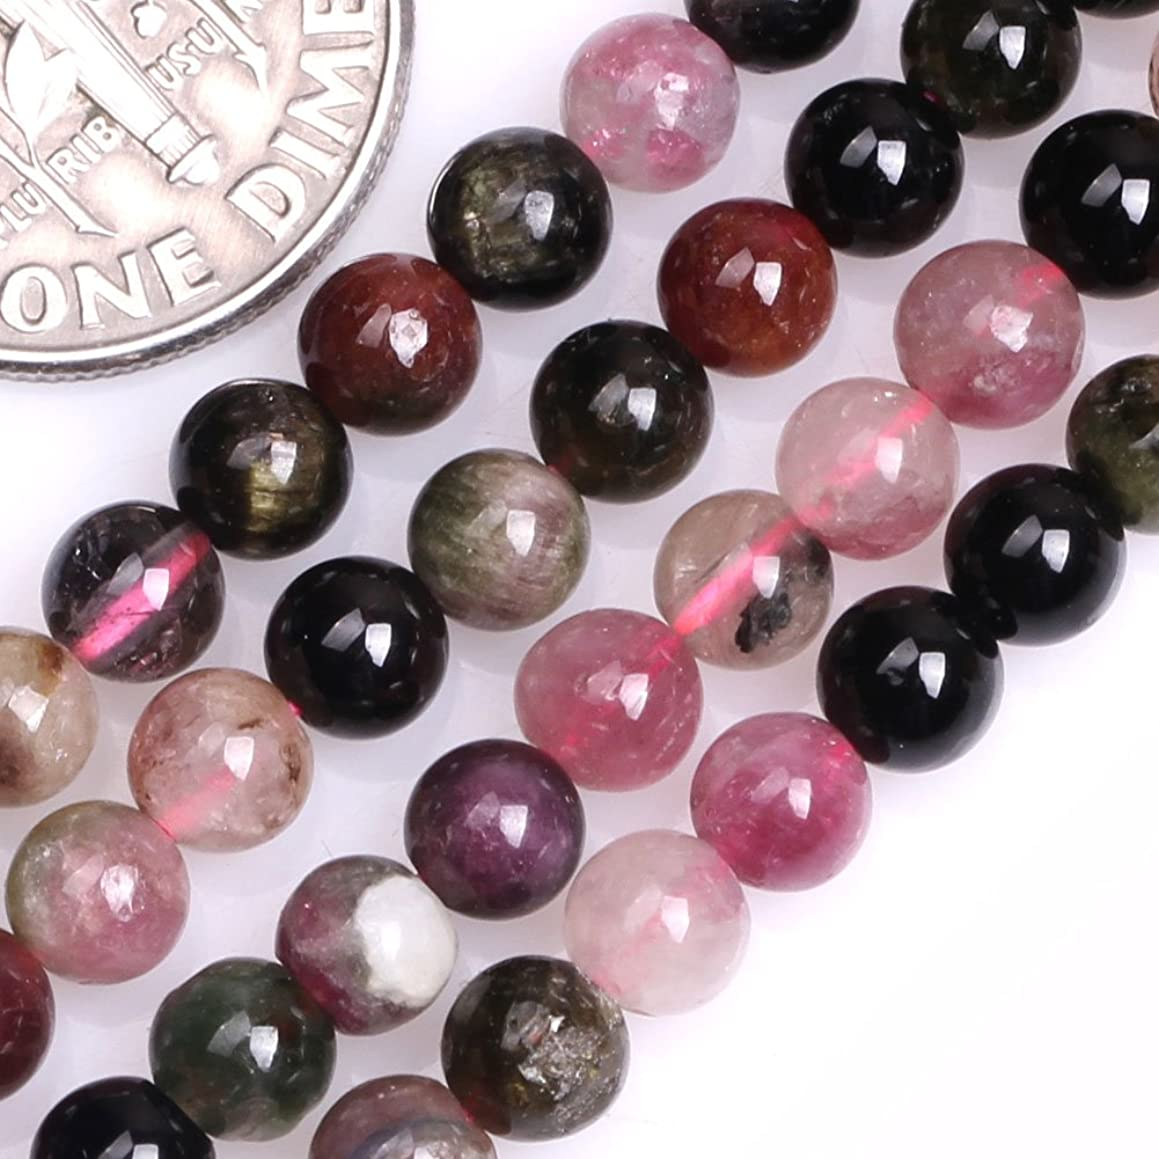 GEM-inside Facted Black Agate Gemstone Loose Beads Round 14mm Crystal Energy Stone Power For Jewelry Making 15 Inches